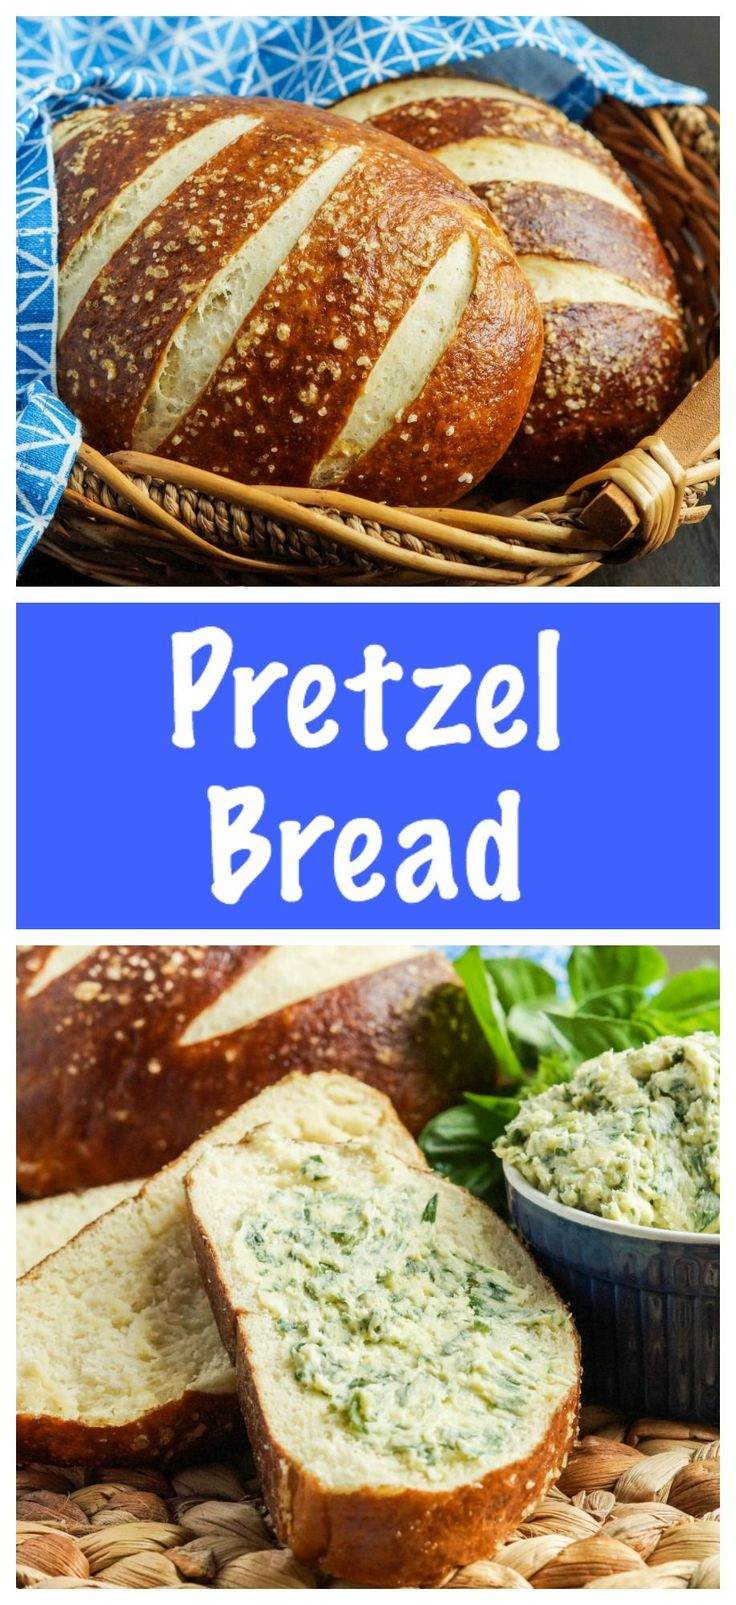 A week of Oktoberfest-style food wouldn't be complete without a pretzel recipe. This Pretzel Bread is a great way to get the soft pretzel taste without twisting and boiling multiple pretzels.…